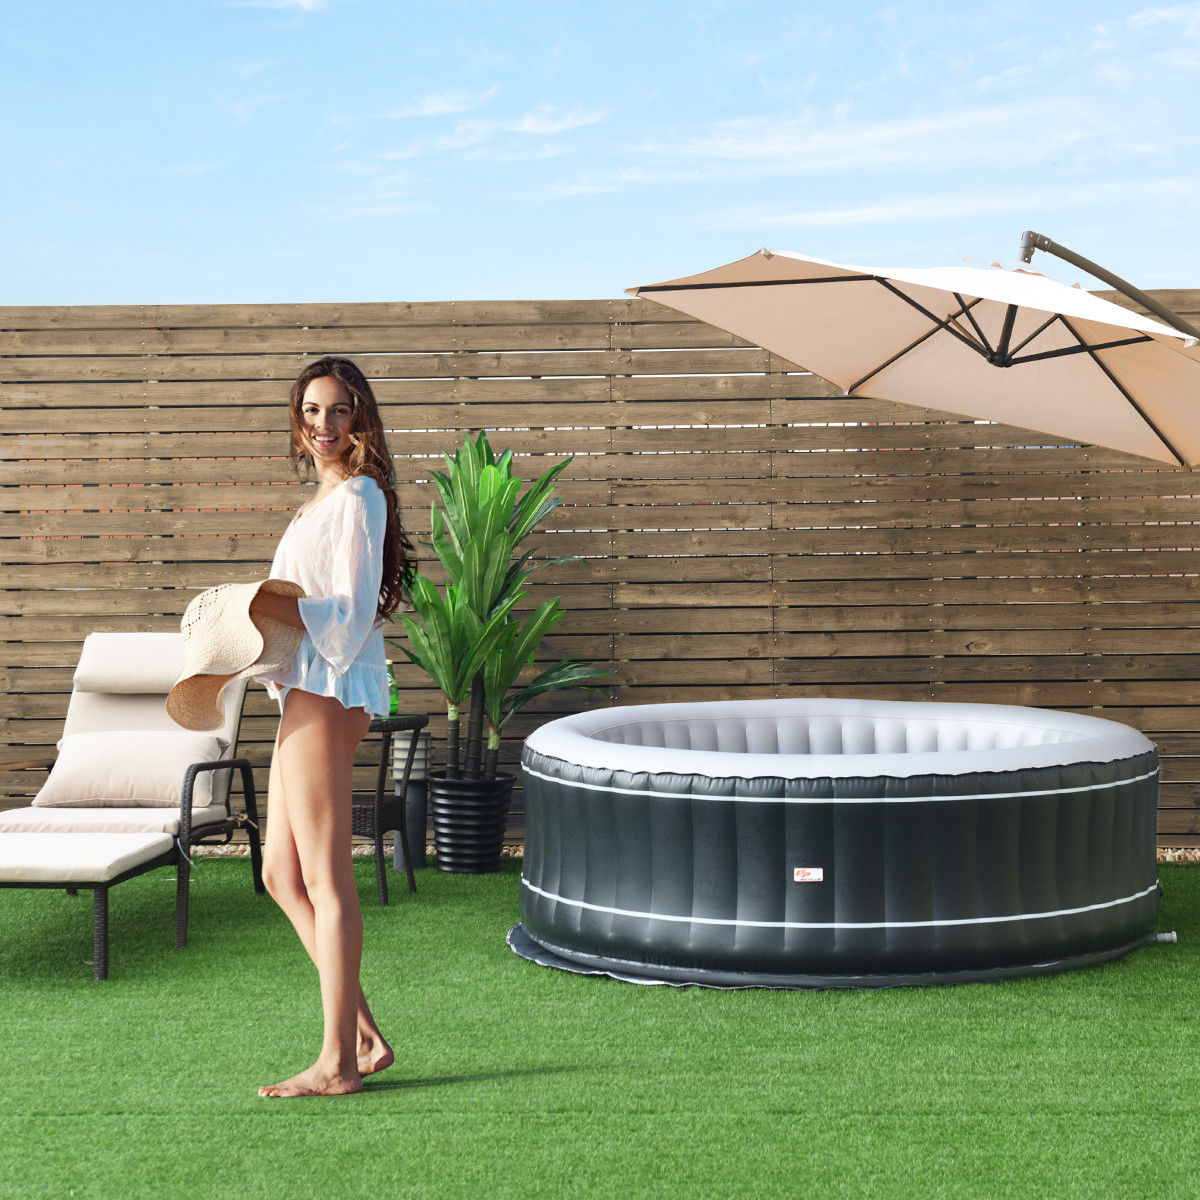 4-Person Inflatable Hot Tub Portable Outdoor Bubble Jet Leisure Massage Spa Gray - image 6 of 8